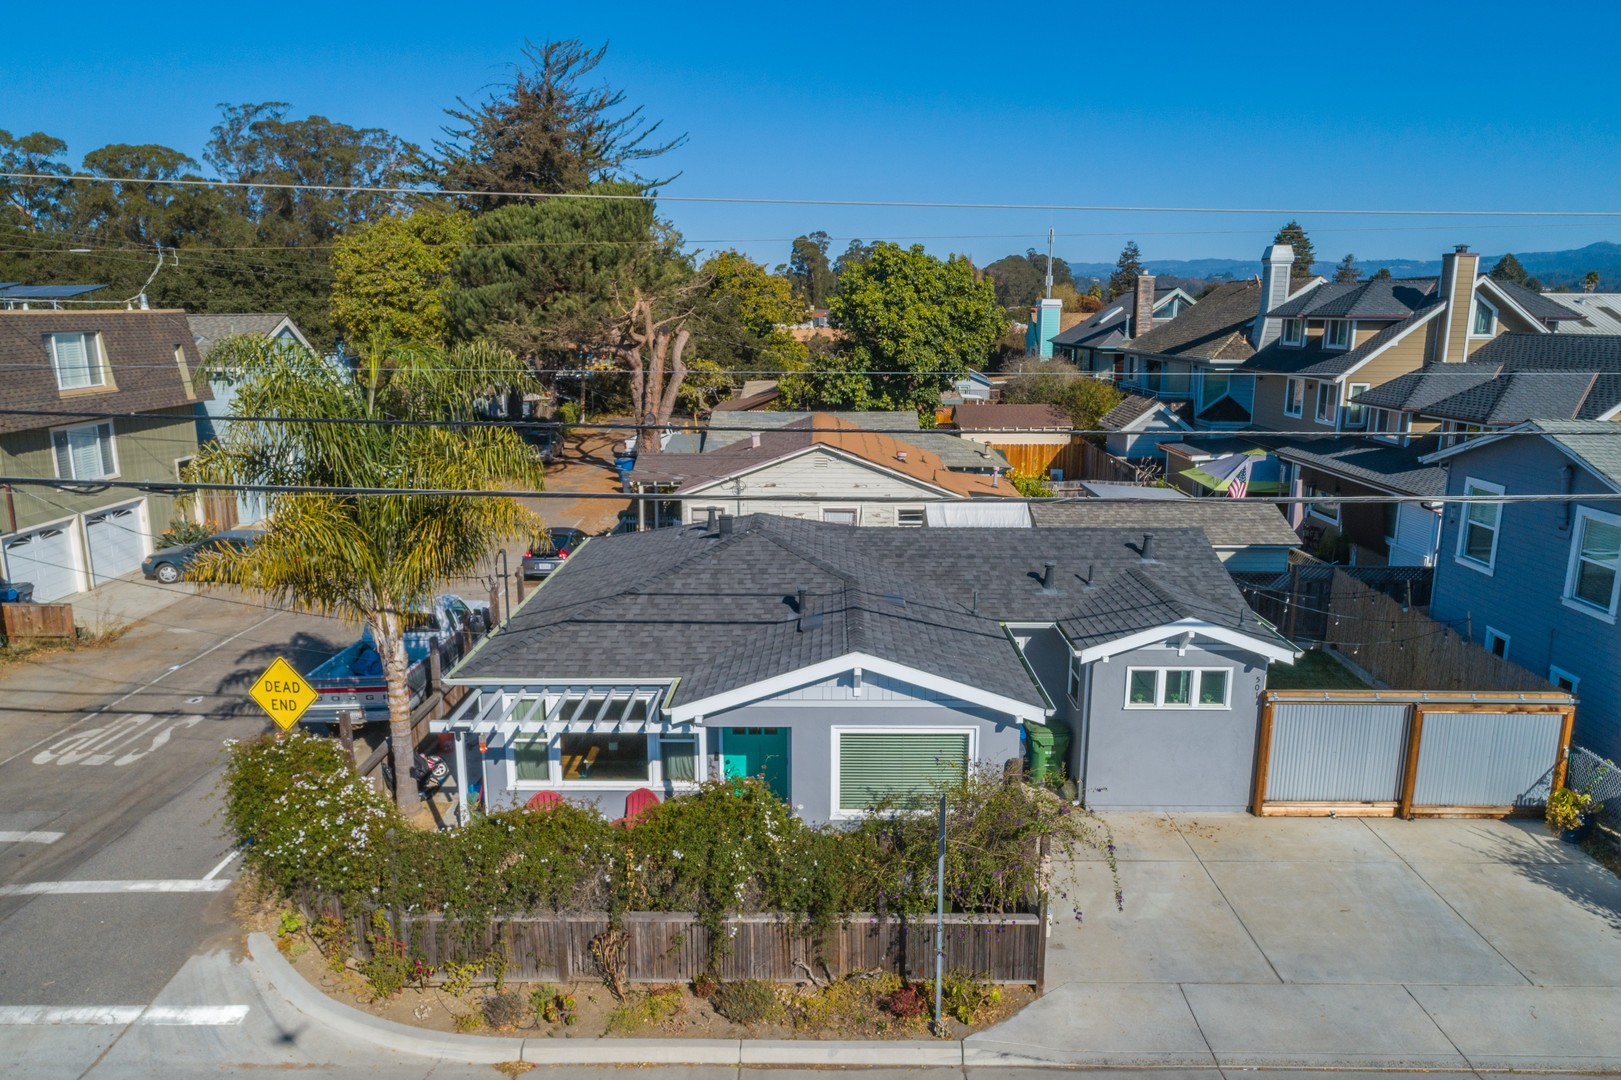 Property Management Companies in Santa Cruz